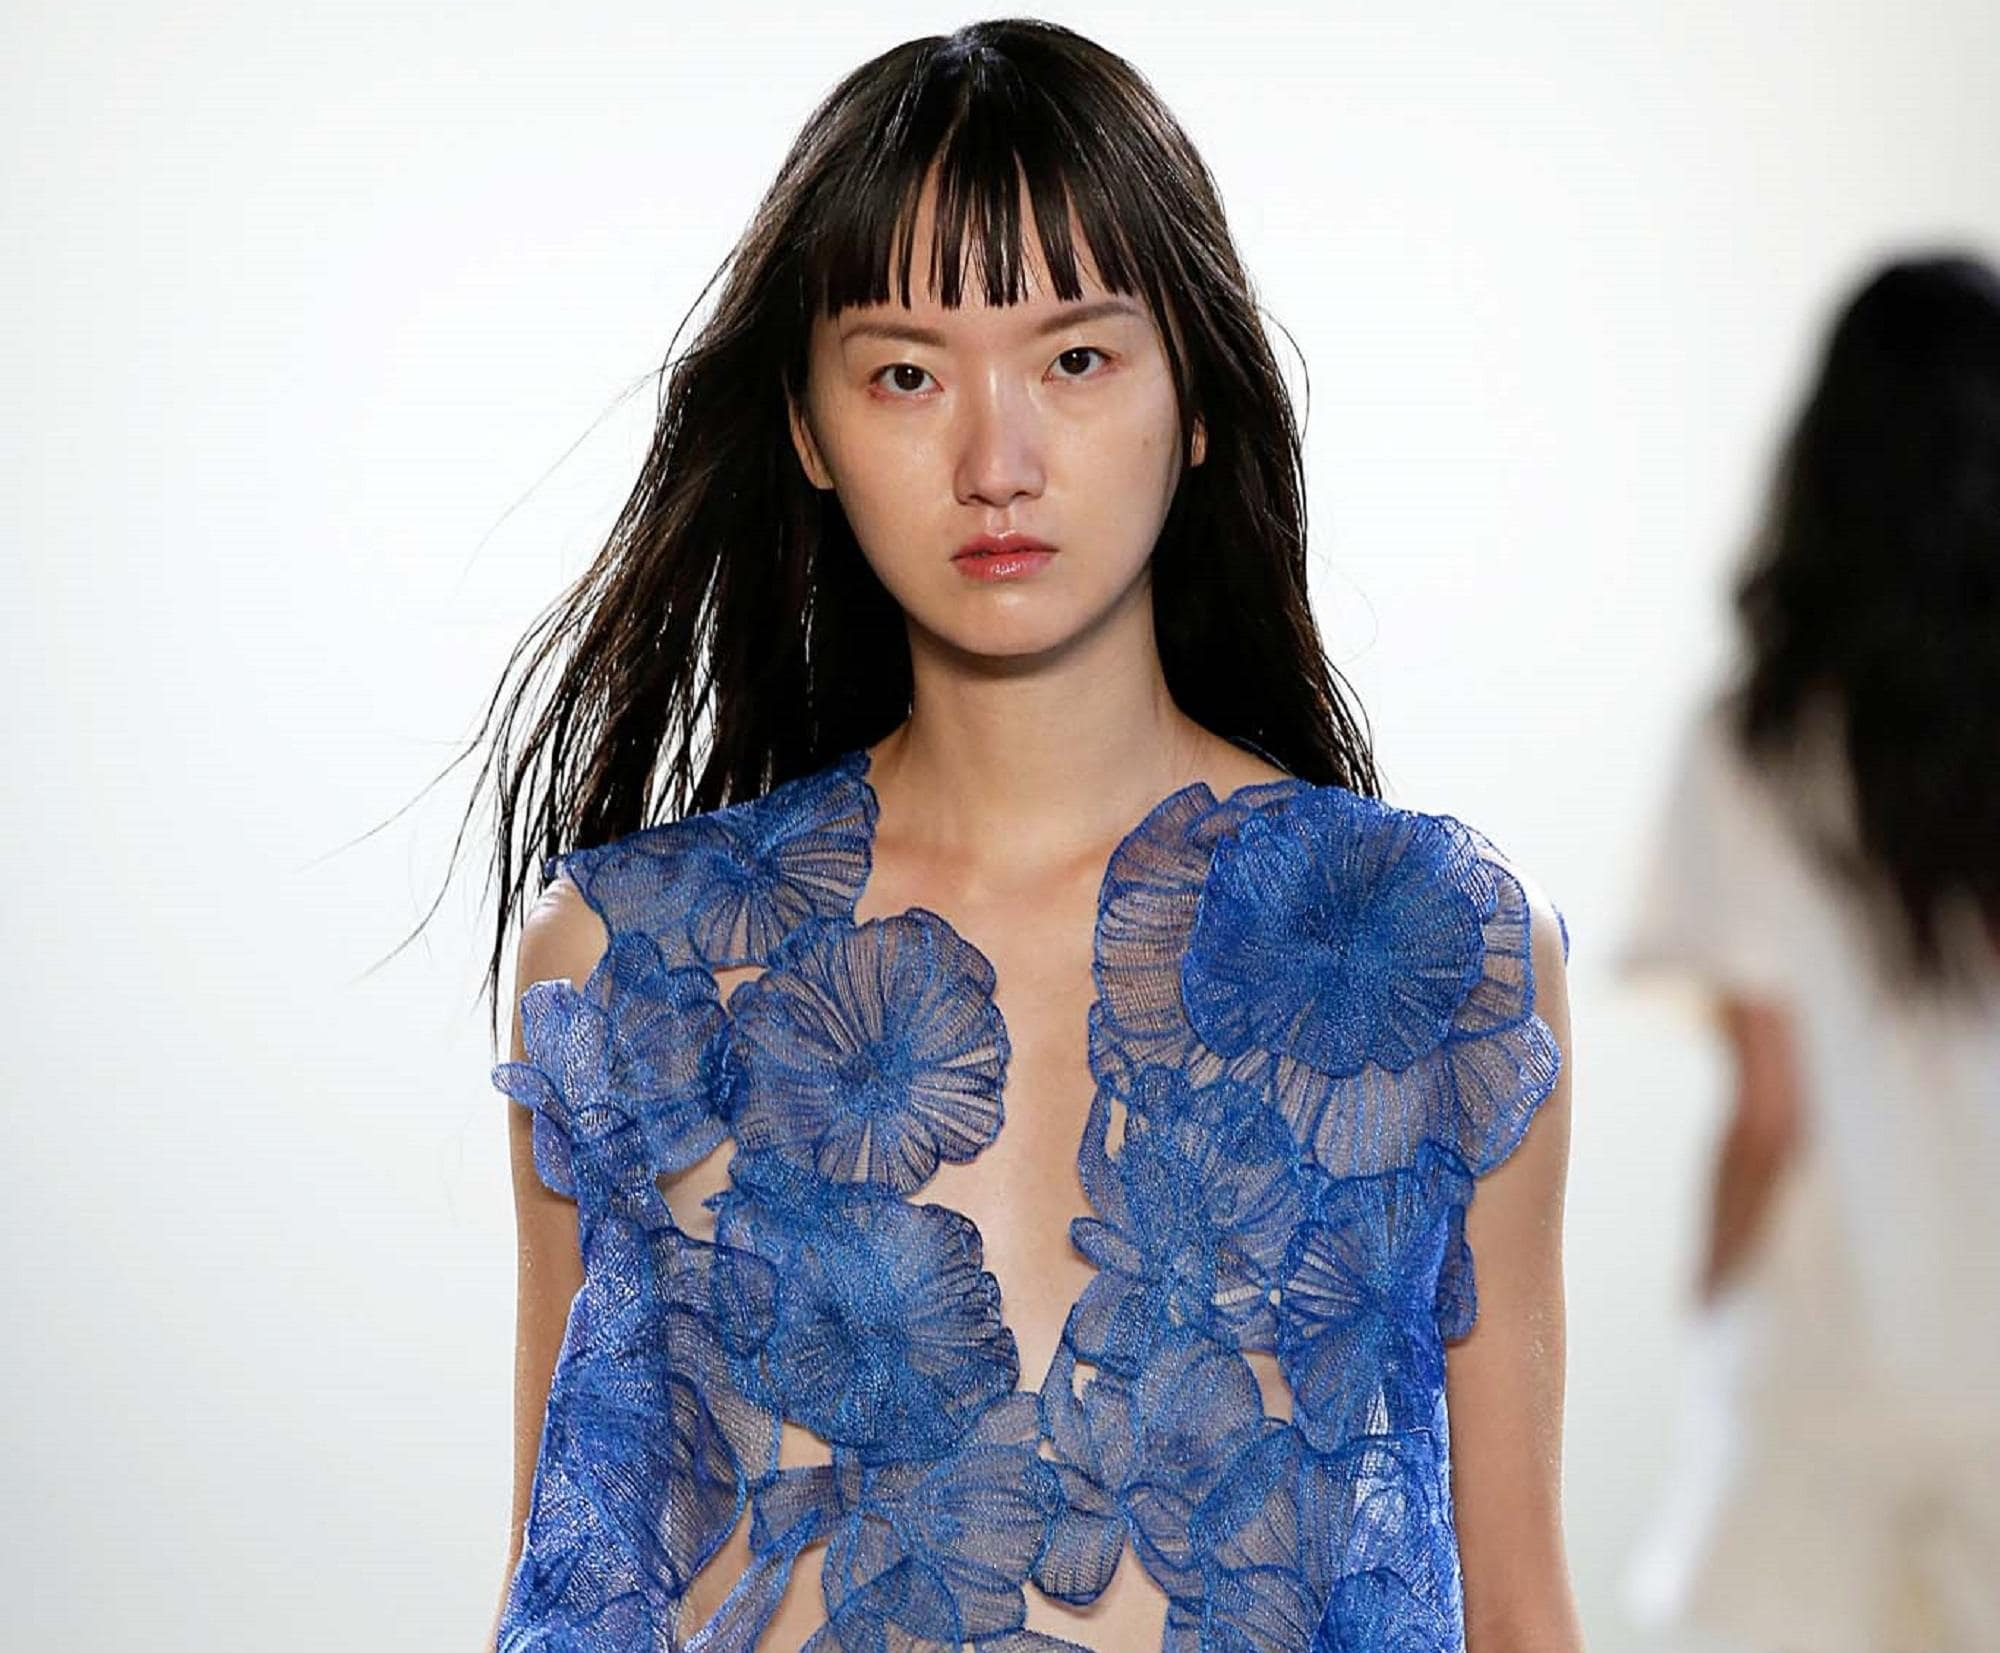 Long black hair: Closeup shot of Asian model with long black hair with bangs wearing a blue dress